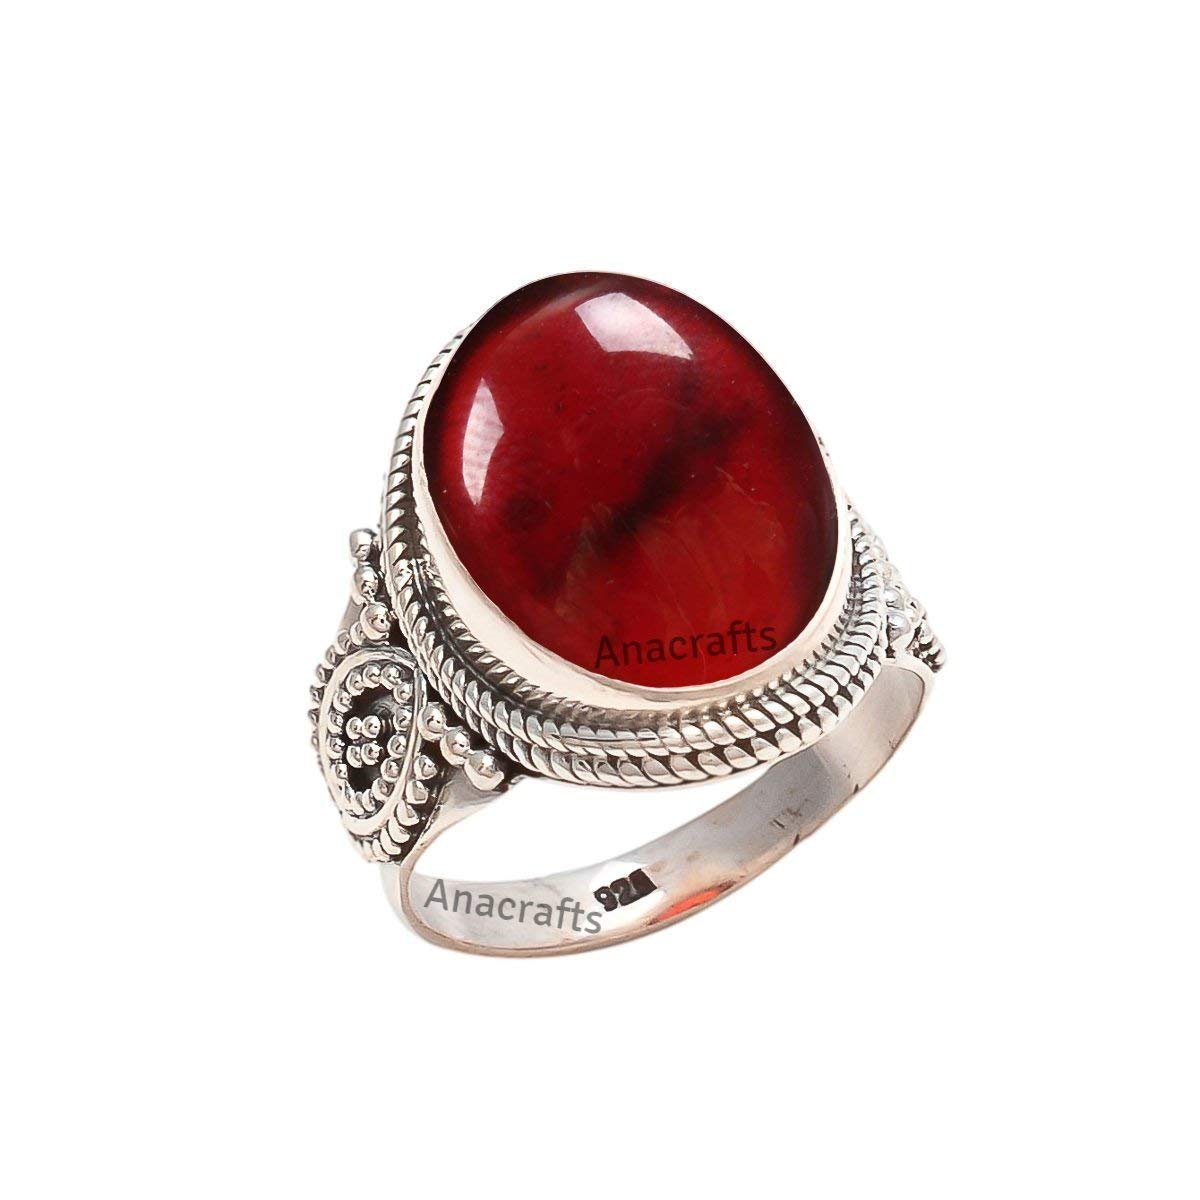 Jewelryonclick Oval Cut Designer Garnet Sterling Silver Ring For Men /& Women Size US 4 to 12